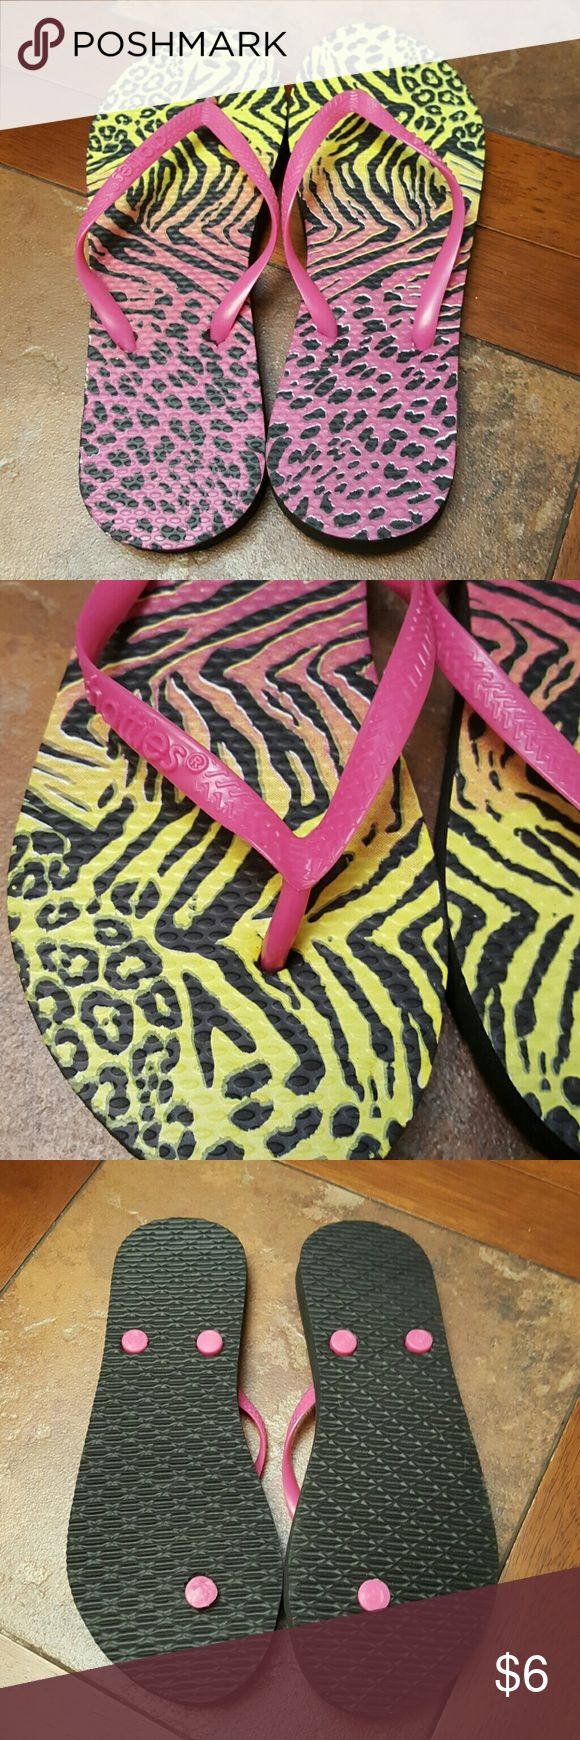 Animal Print Flip Flops Brand New  Size 7-8 Chatties Shoes Sandals